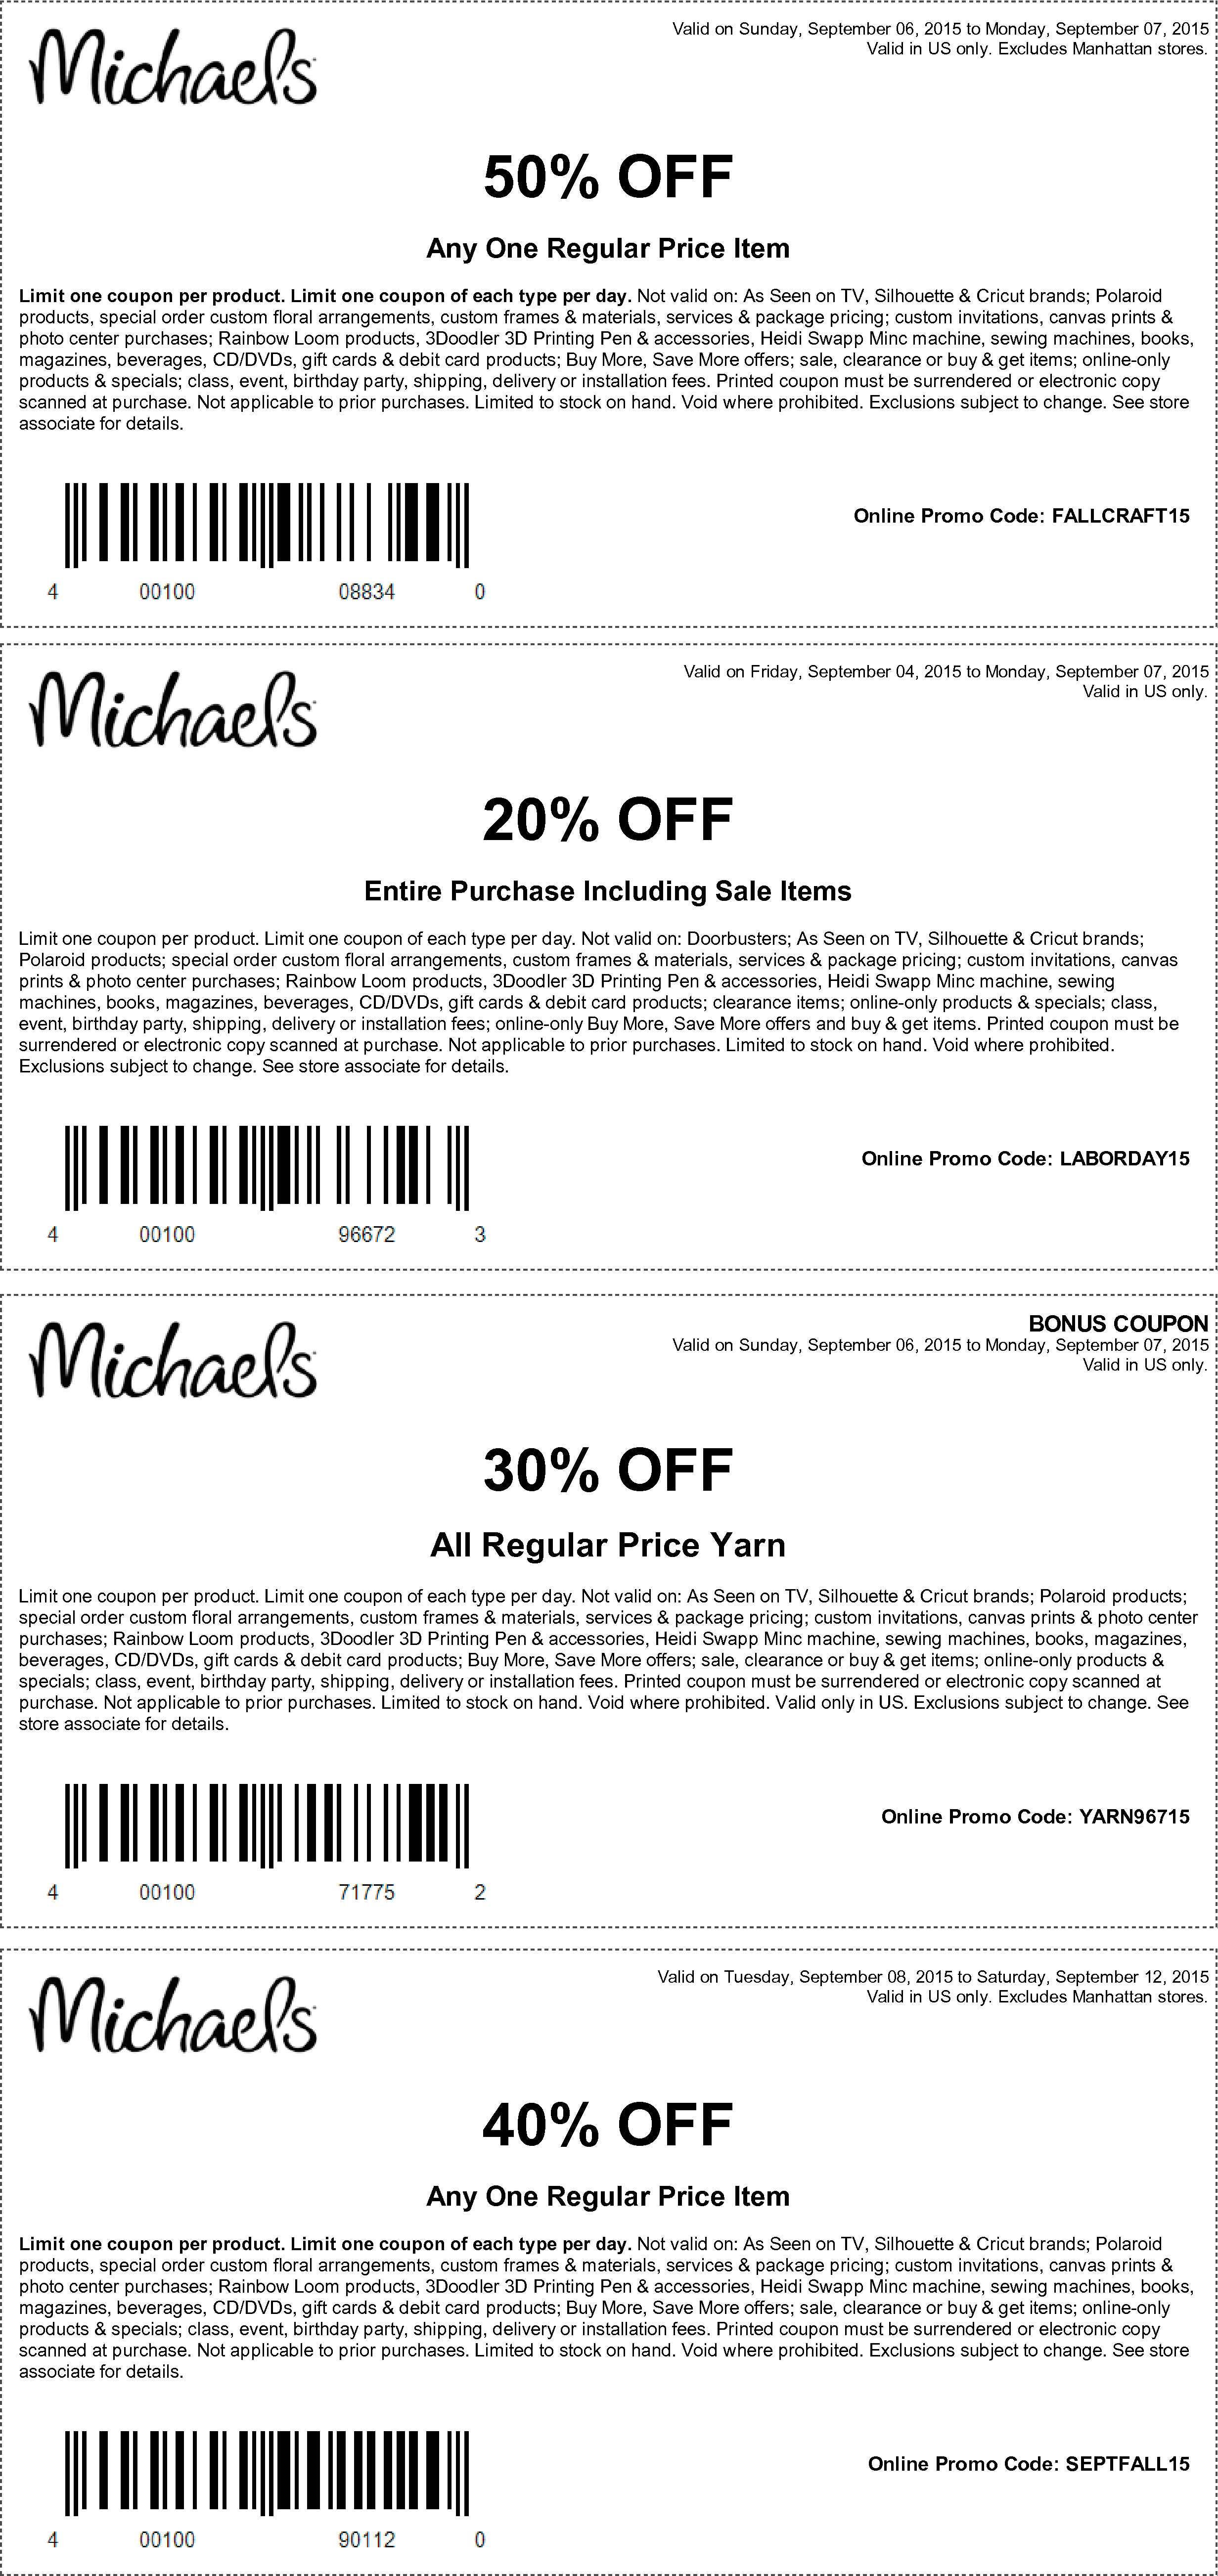 Michaels Coupon June 2017 40-50% off a single item & more at Michaels, or online via promo code SEPTFALL15